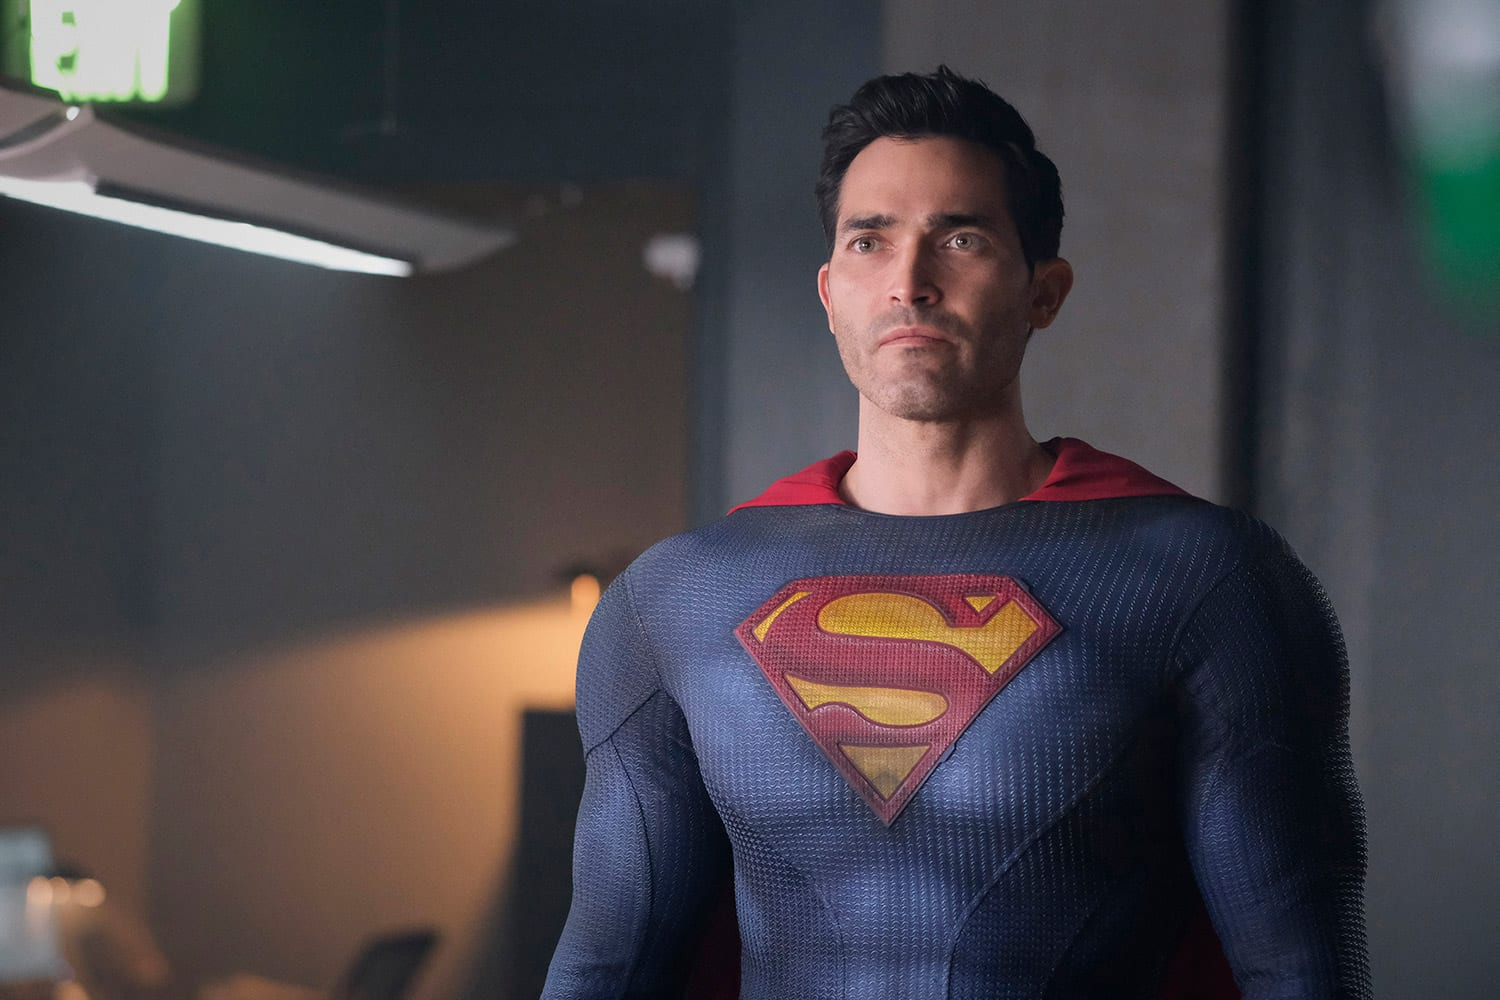 Superman and Lois Season 1 Episode 8 Release Date and Spoilers